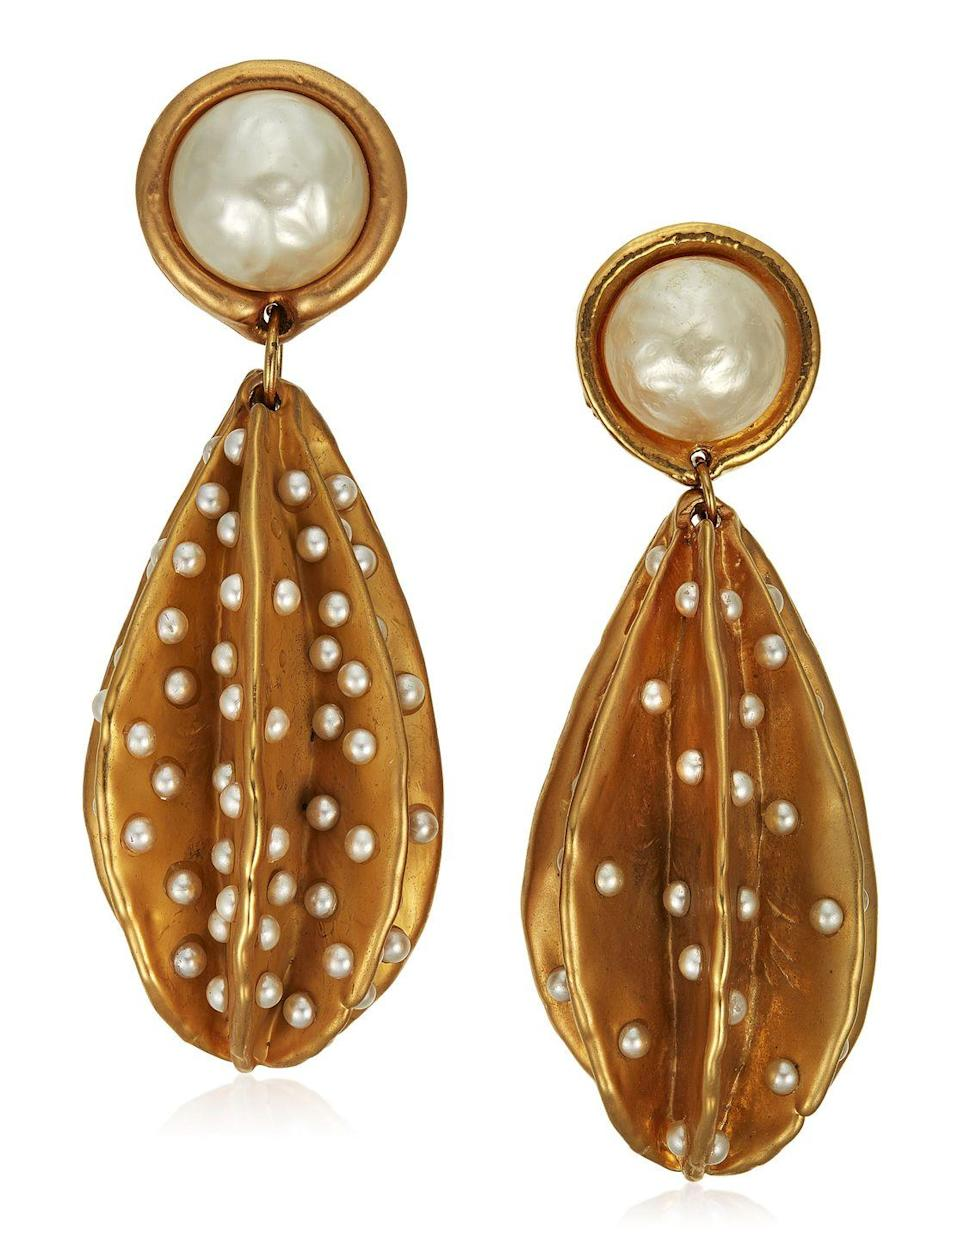 <p>This pearl-studded pendants are estimated to be worth $1,500 to $2,000.</p>